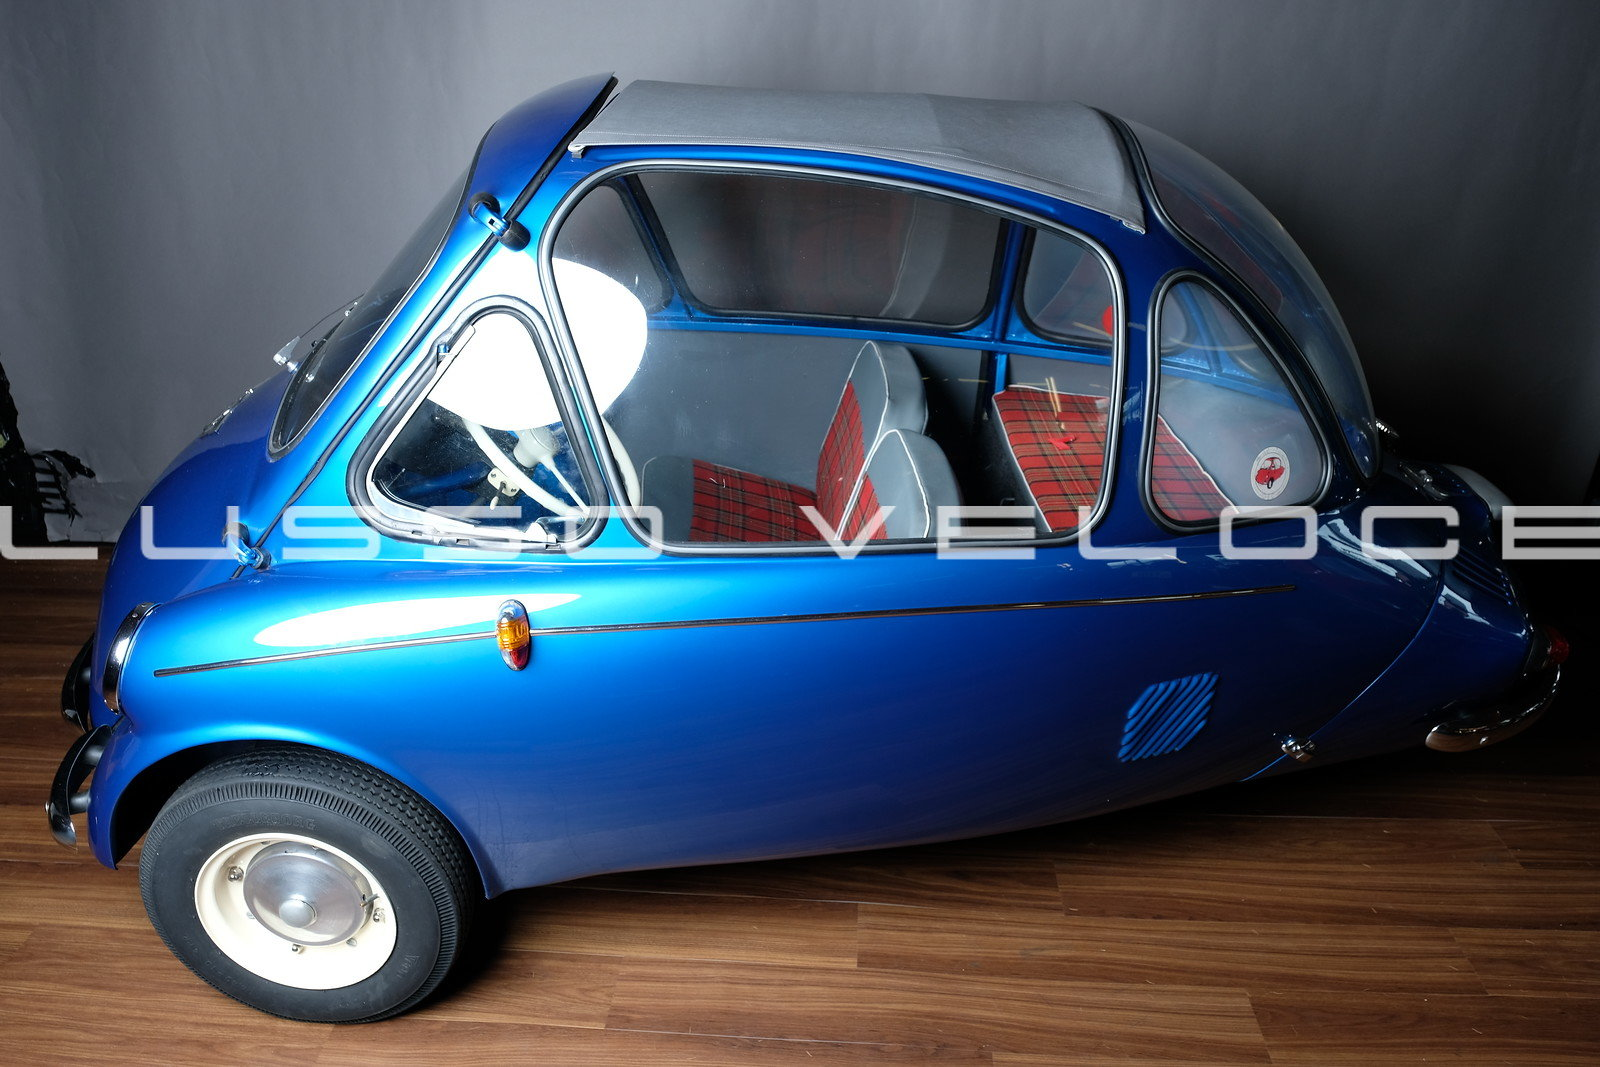 1962 Heinkle Trojan Bubble car  For Sale (picture 6 of 6)